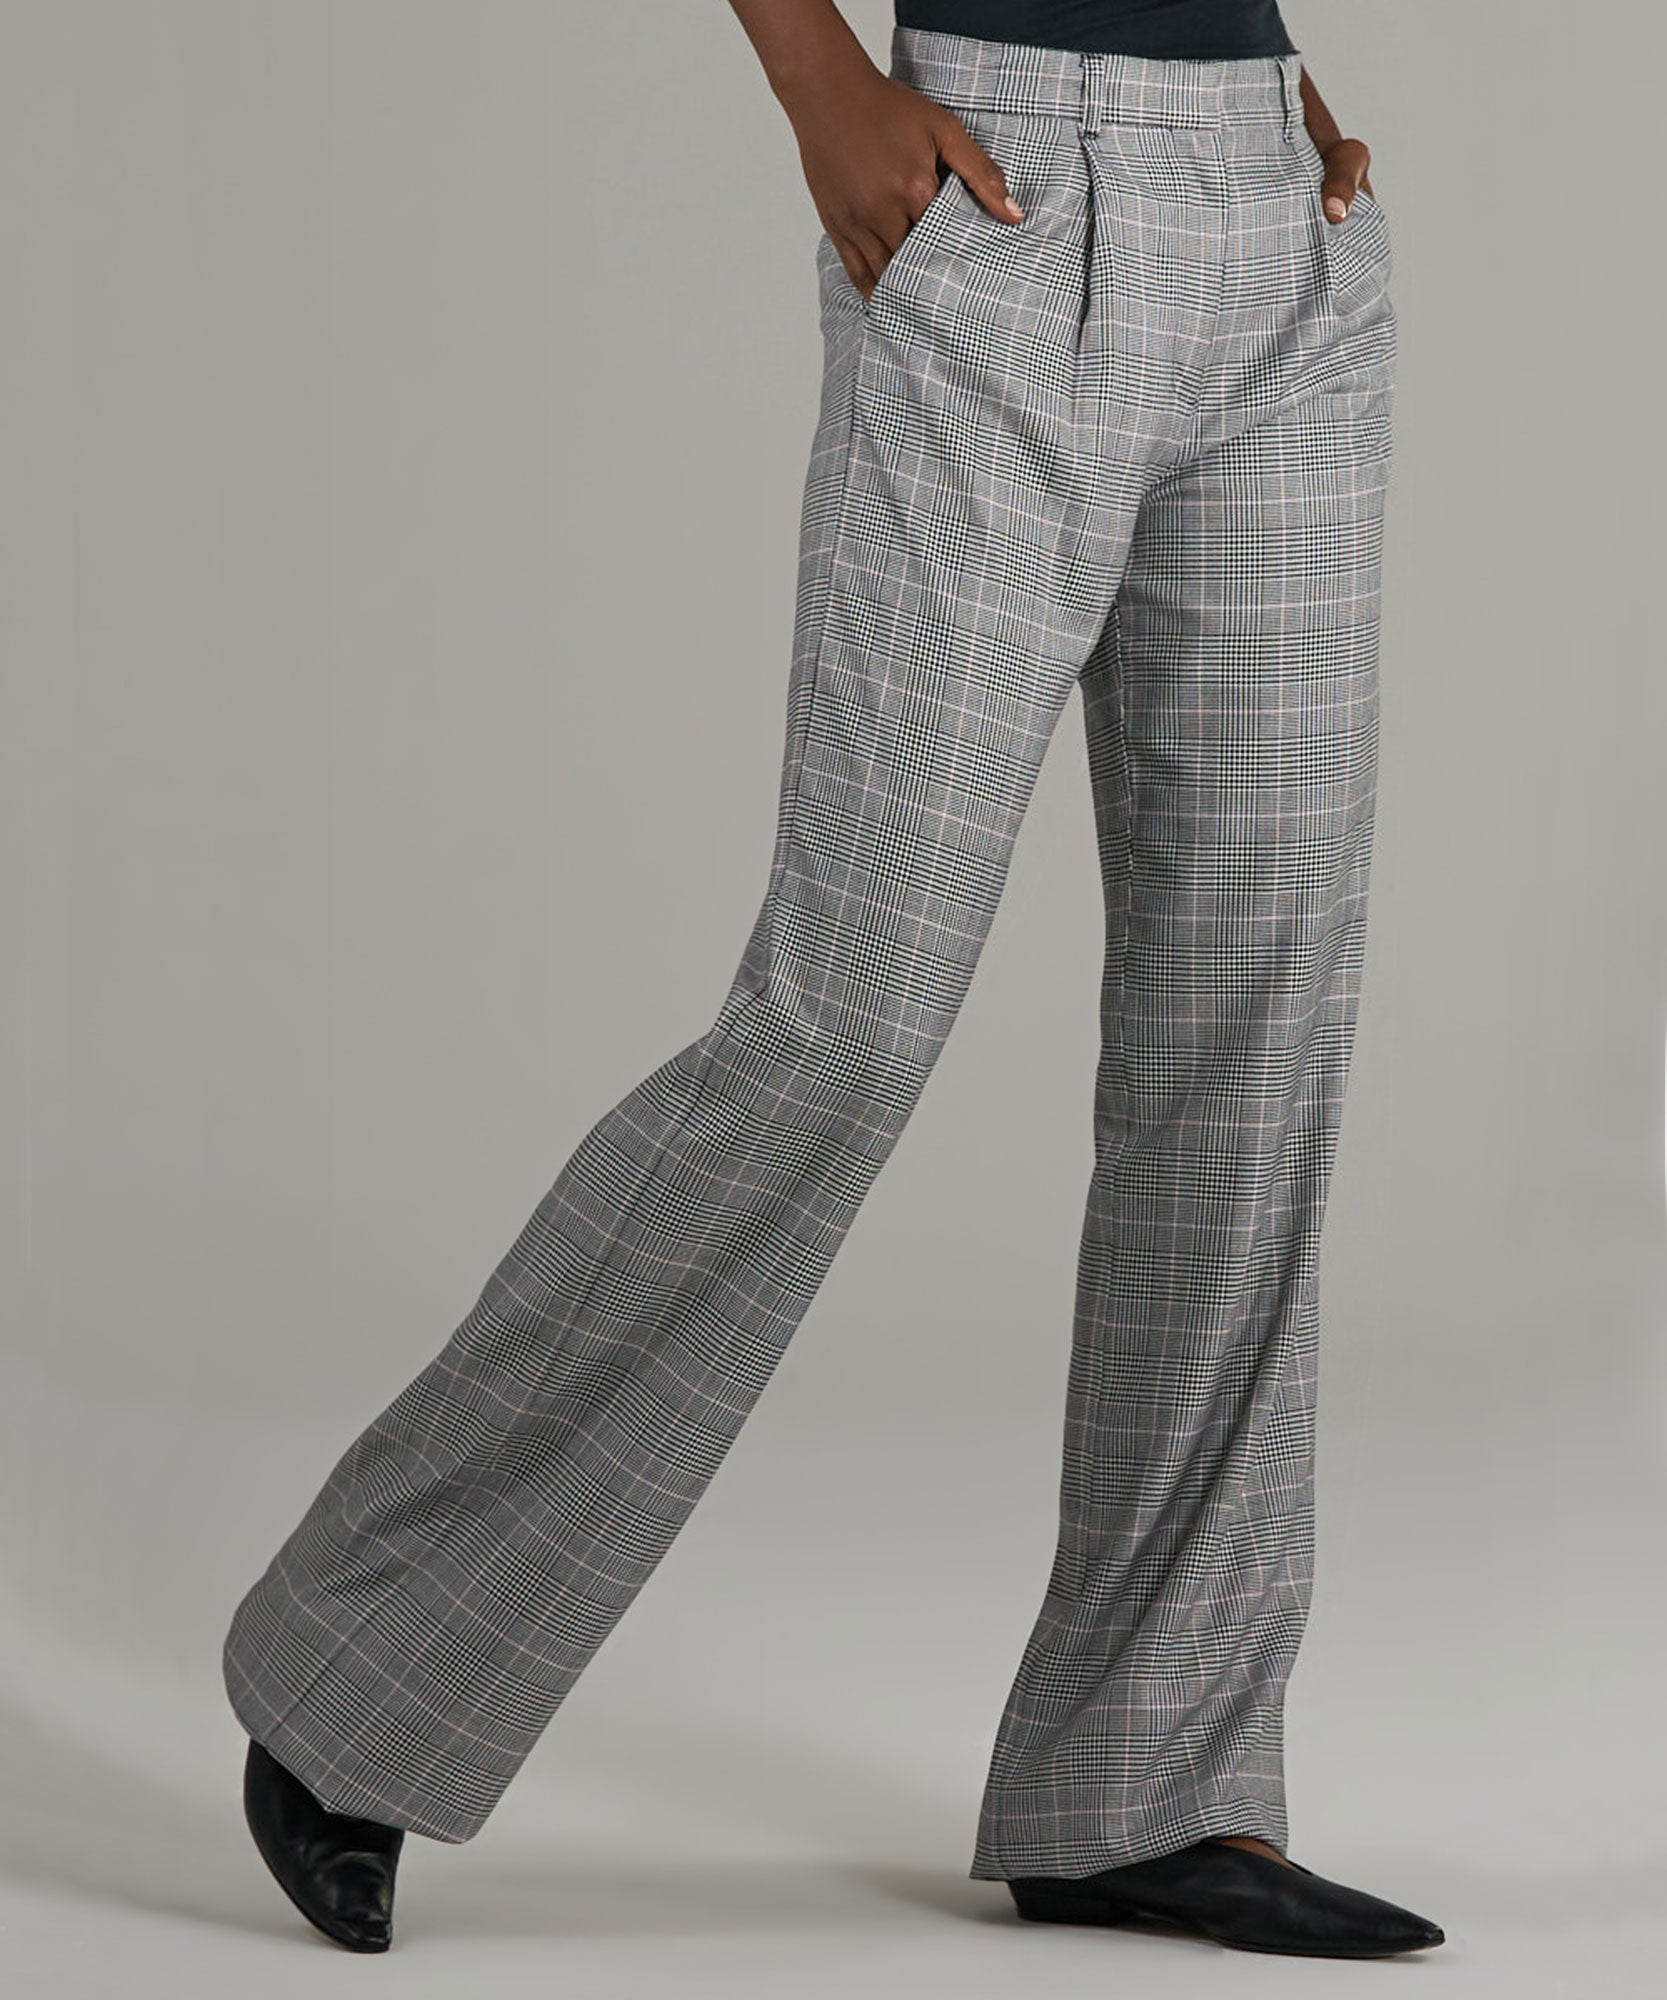 Black/ Beige Combo Glen Plaid Wide Leg Pants - Women's Pants by ATM Anthony Thomas Melillo